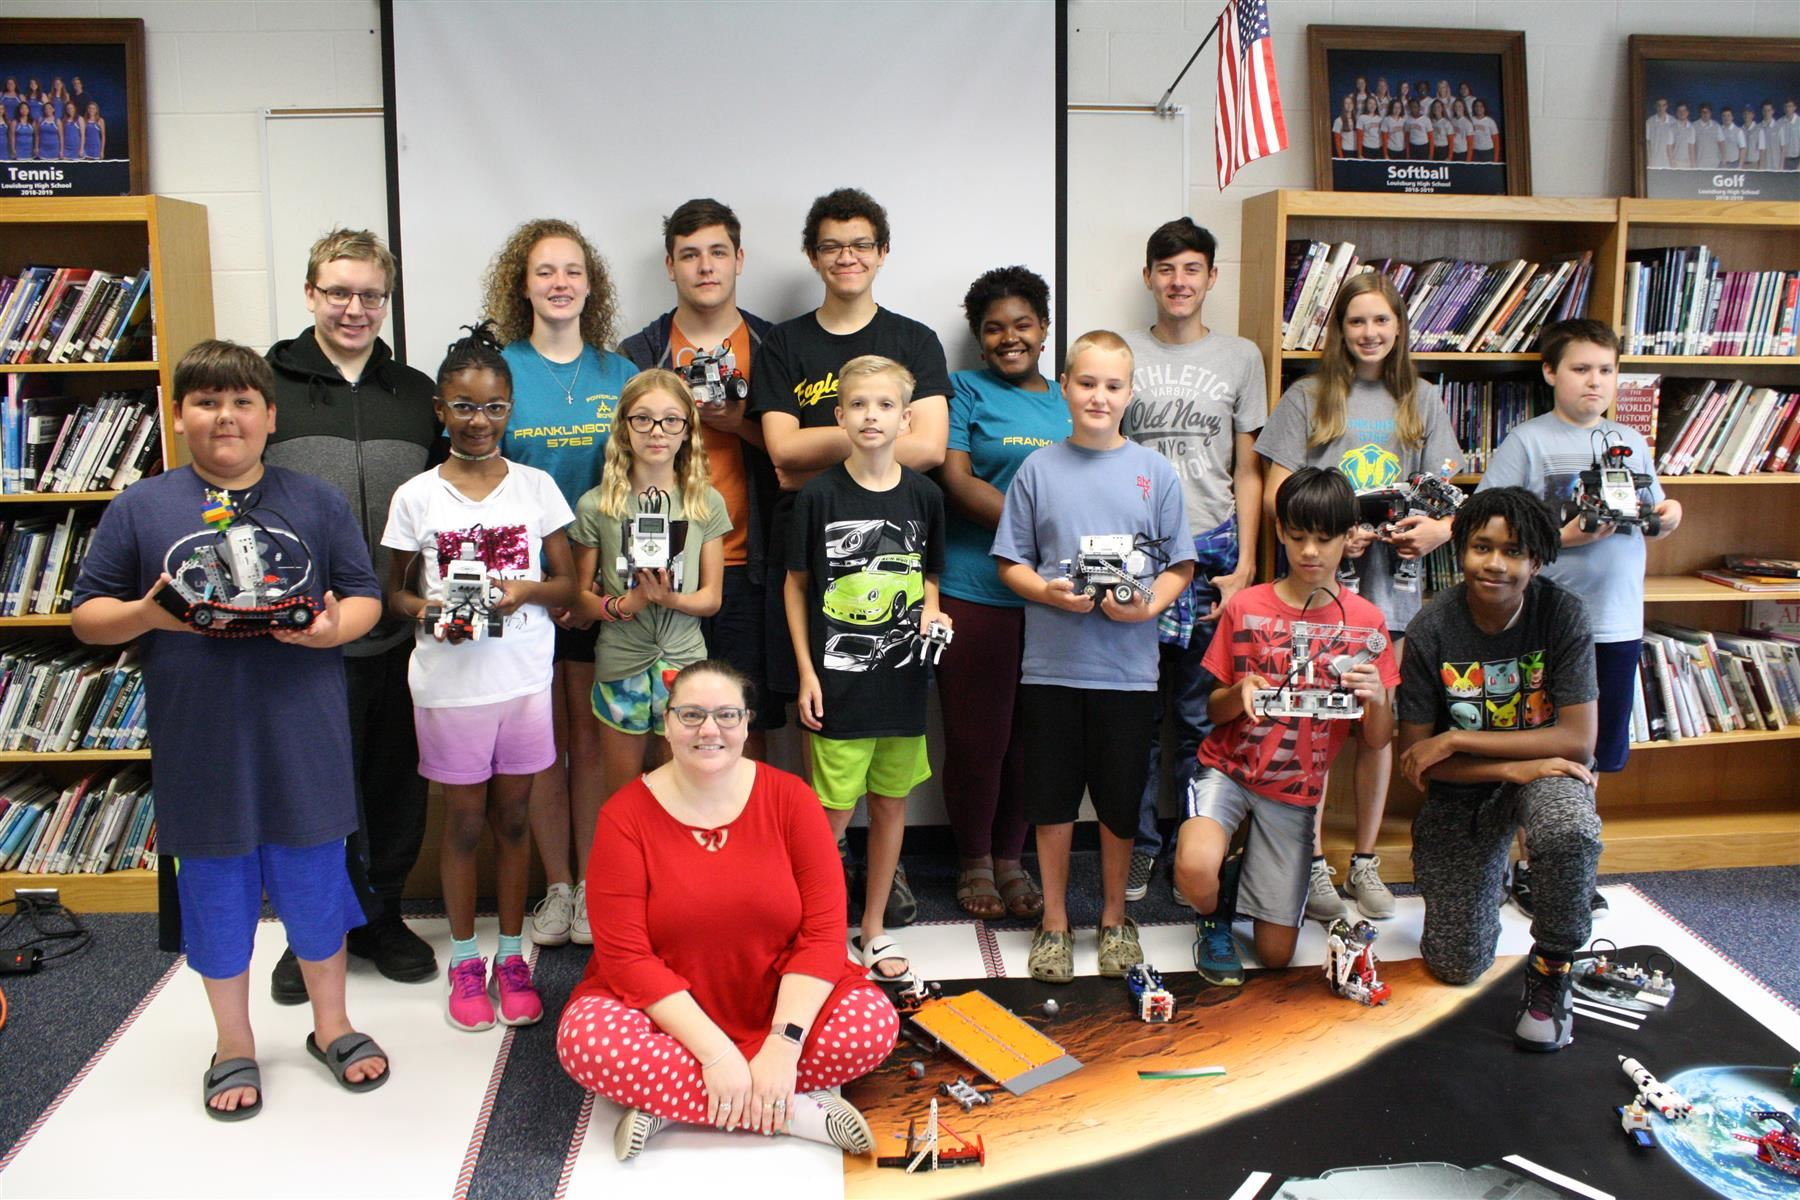 Robotics Summer Camps help students learn STEAM skills